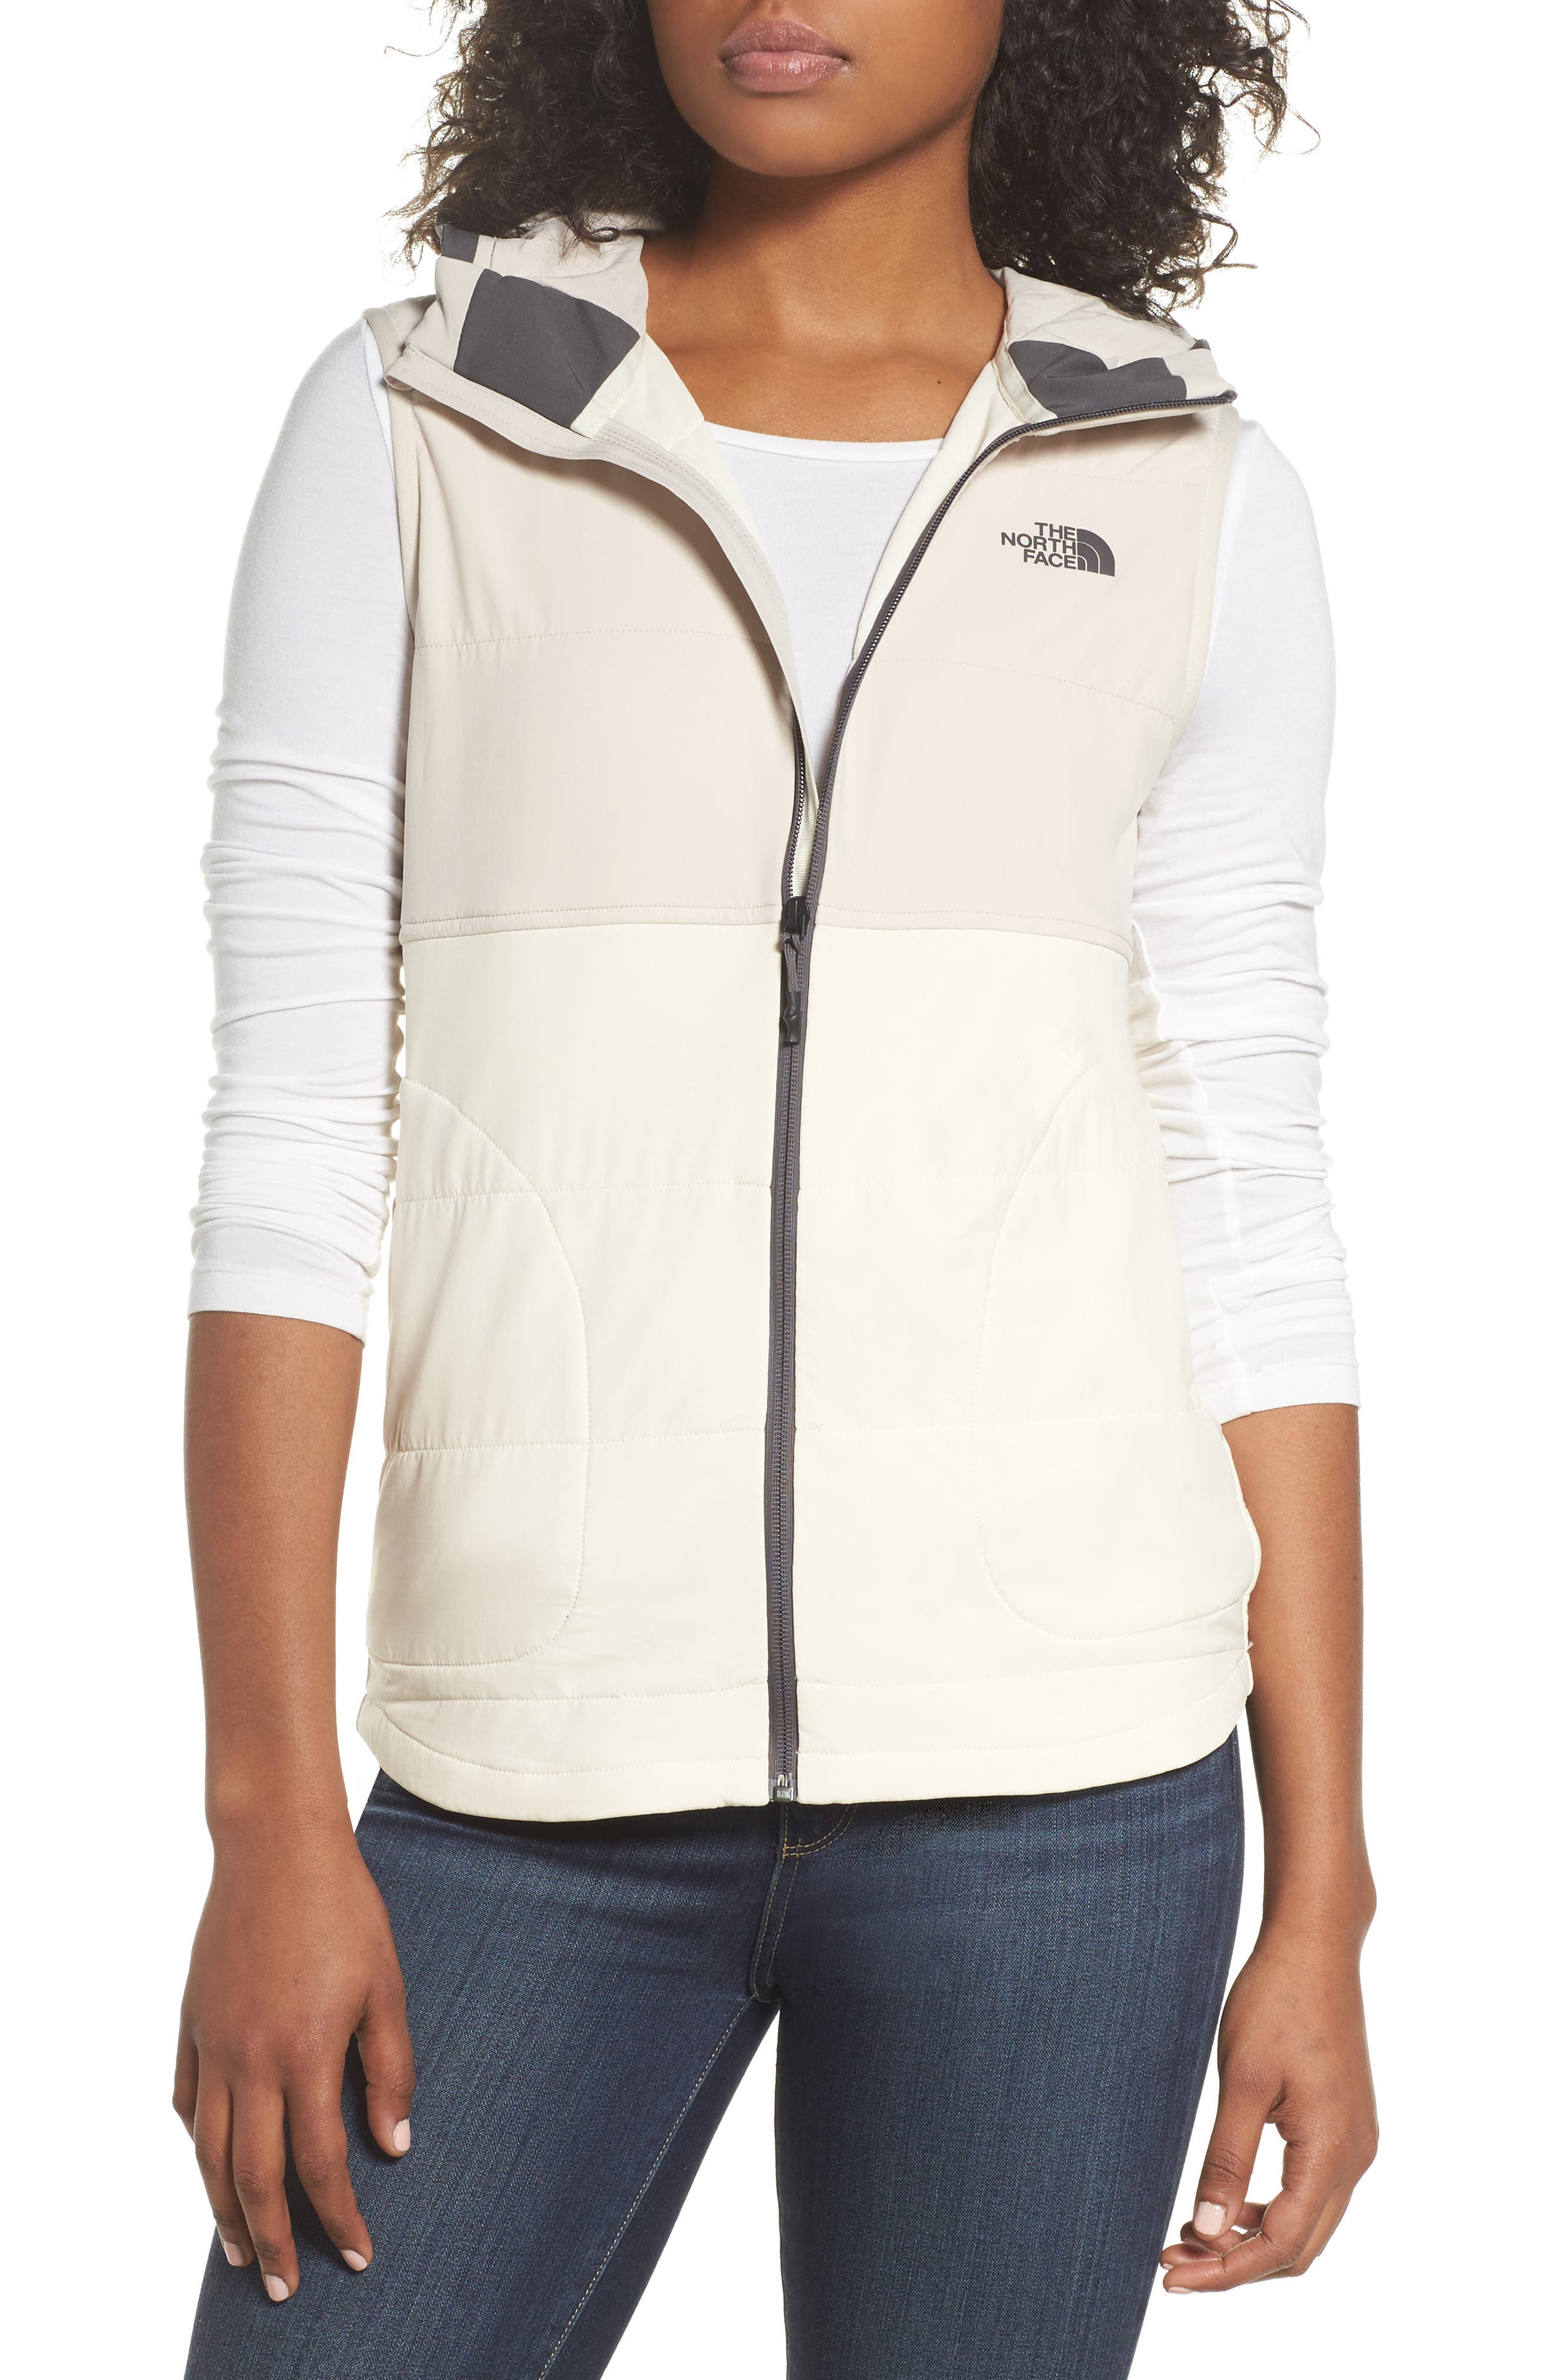 Mountain Sweatshirt Insulated Hooded Vest,                             Main thumbnail 1, color,                             Vintage White/ Peyote Beige